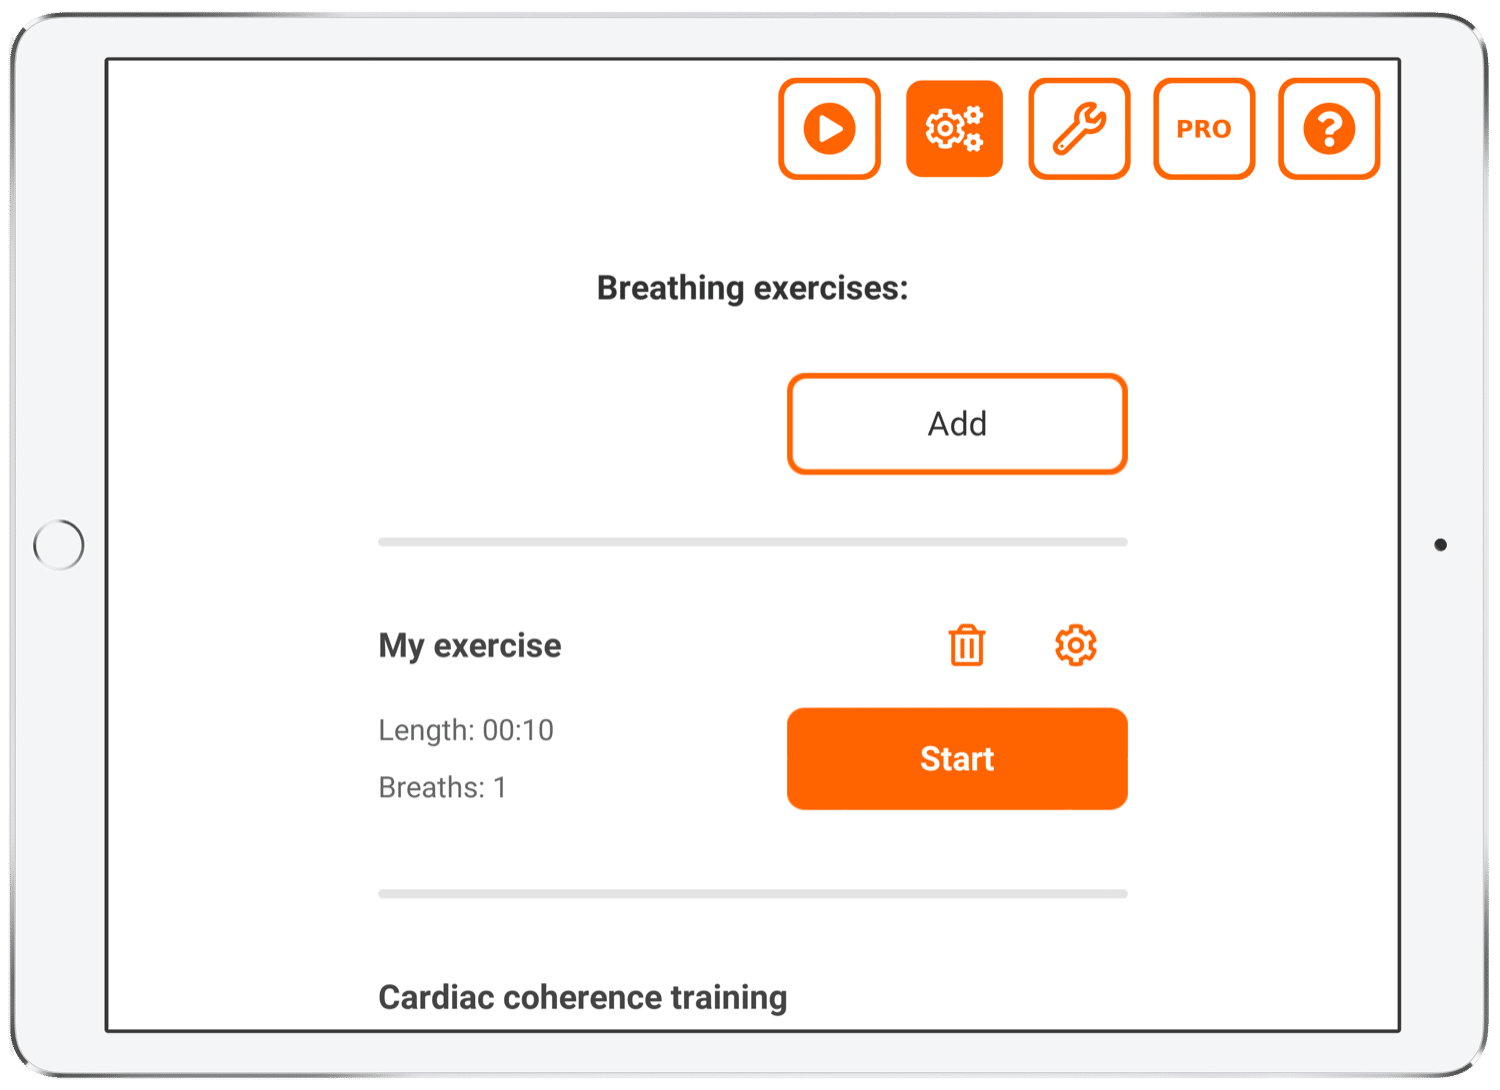 Add your own breathing exercise step 5: Verify your breathing exercise.